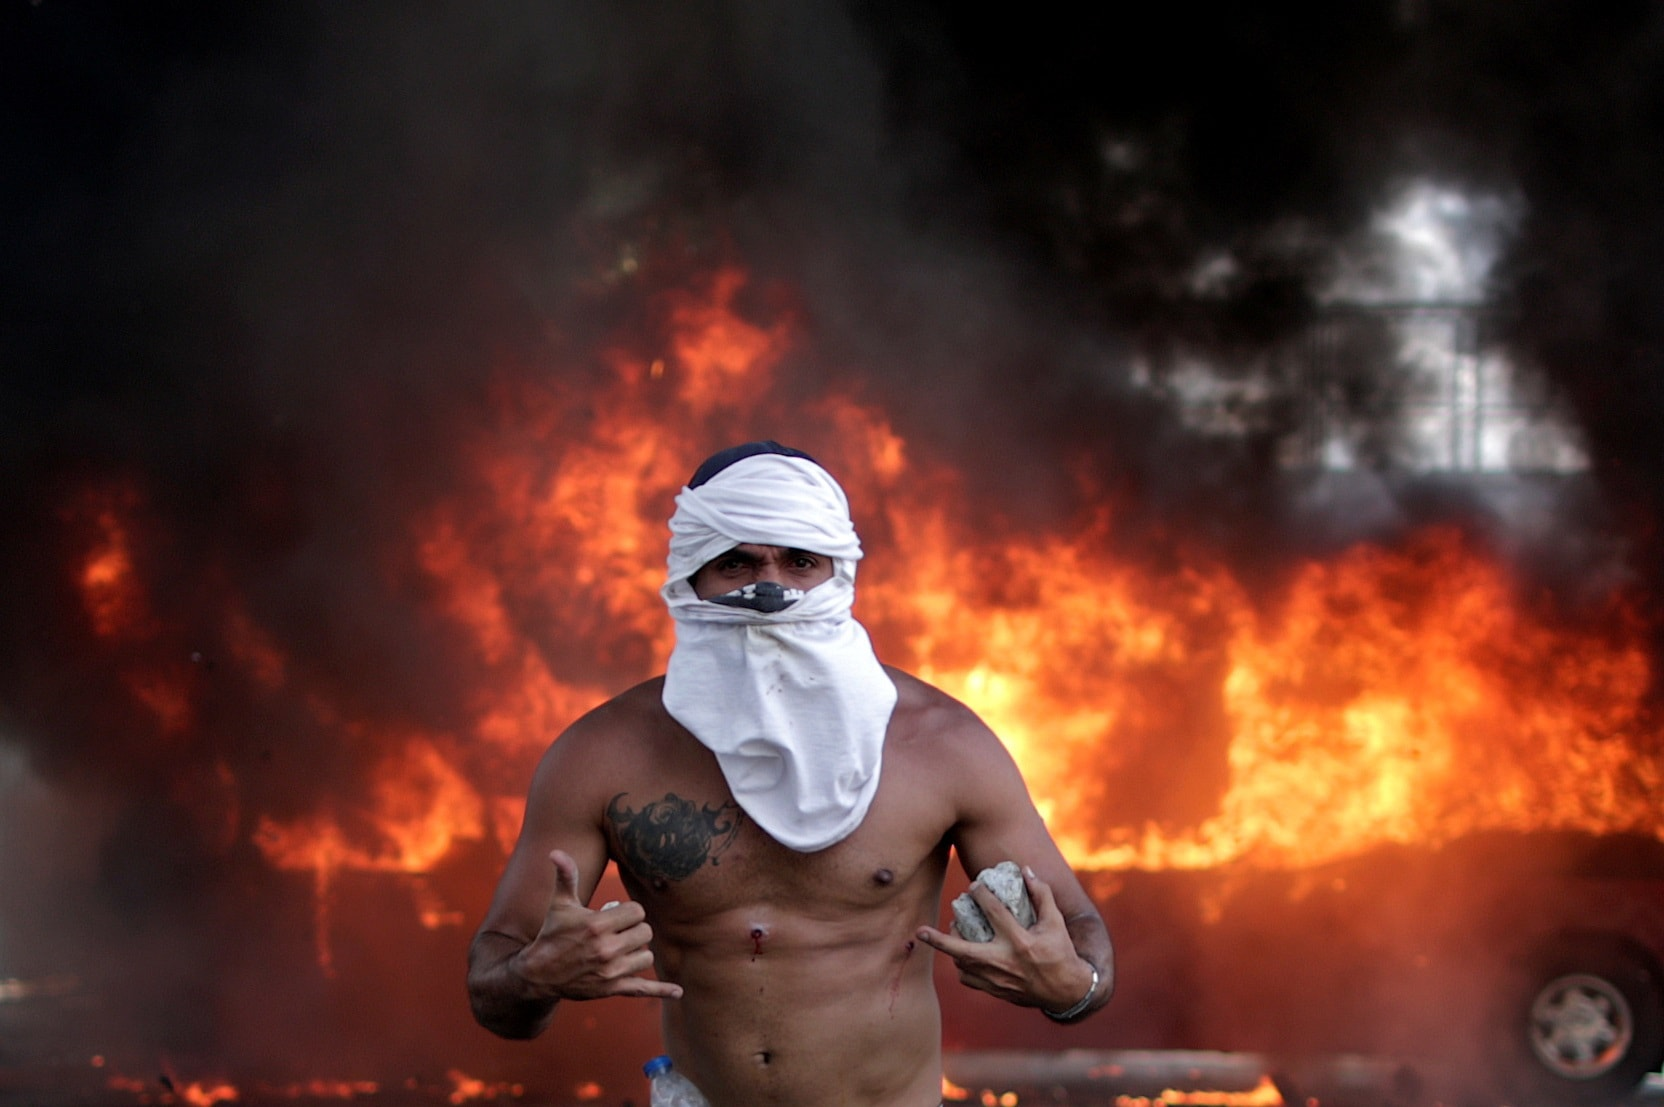 An opposition demonstrator with wounds gestures in front of a burning bus, while holding a rock, near the Generalisimo Francisco de Miranda Airbase